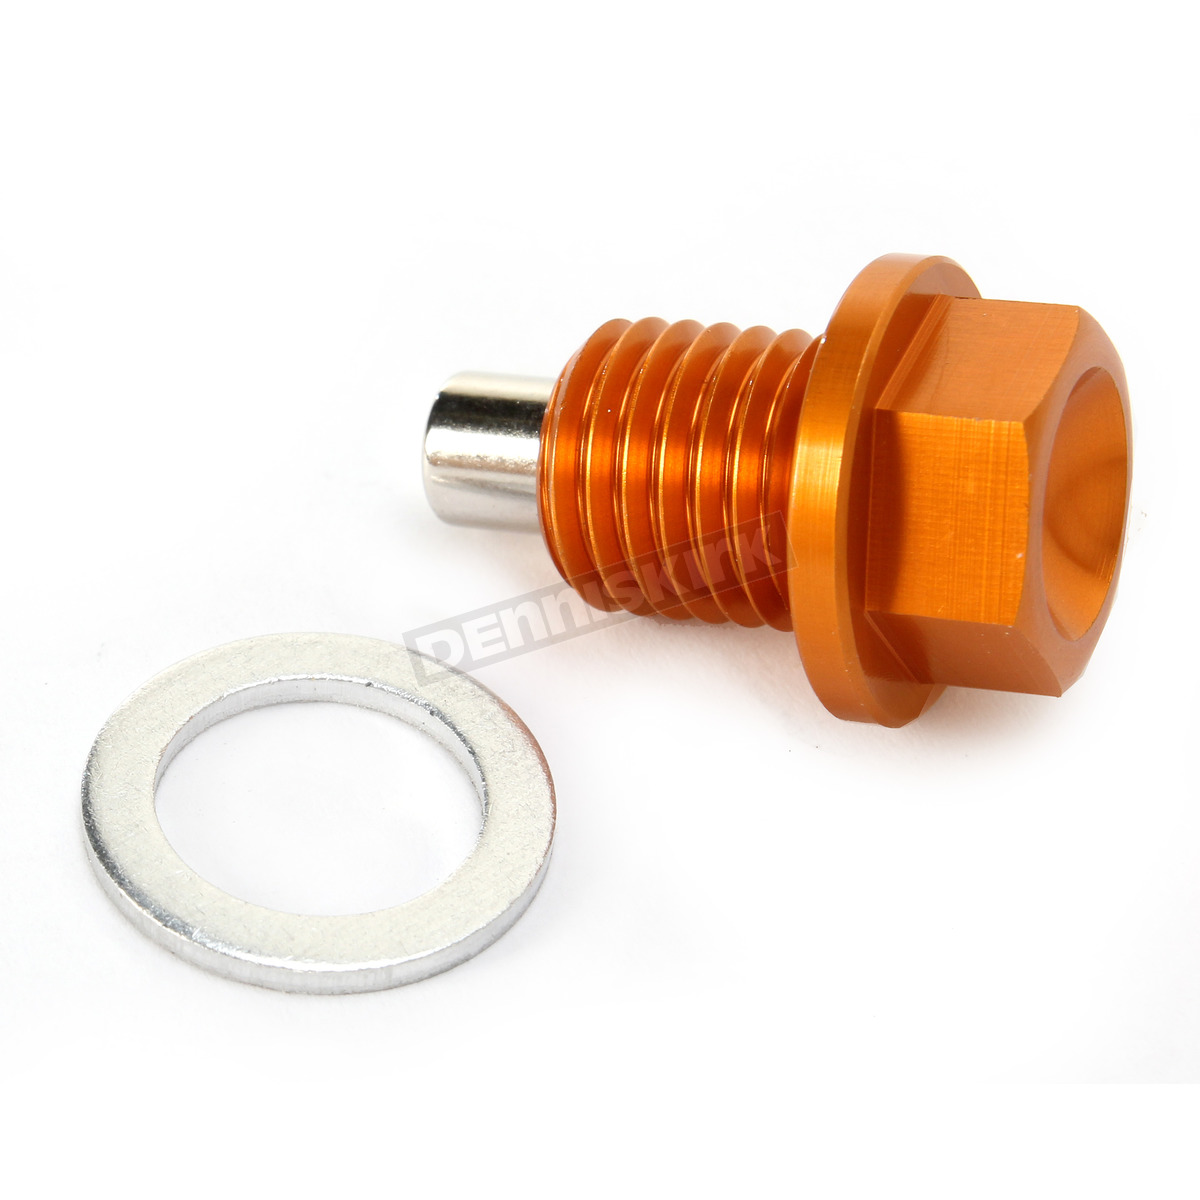 Magnetic Drain Plug - By Zipty - 0920-0046